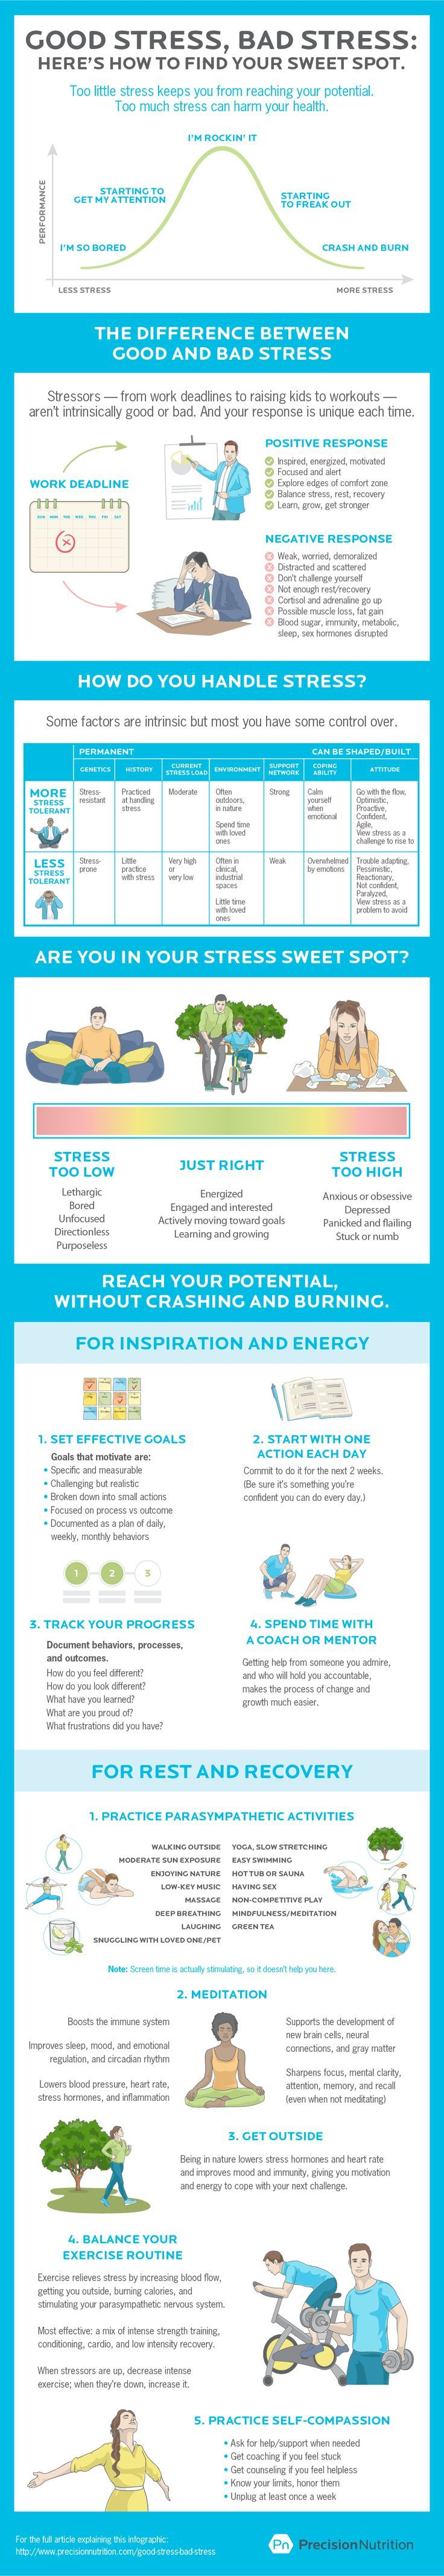 Good stress, bad stress. [Infographic] Here's how to find your stress sweet spot.